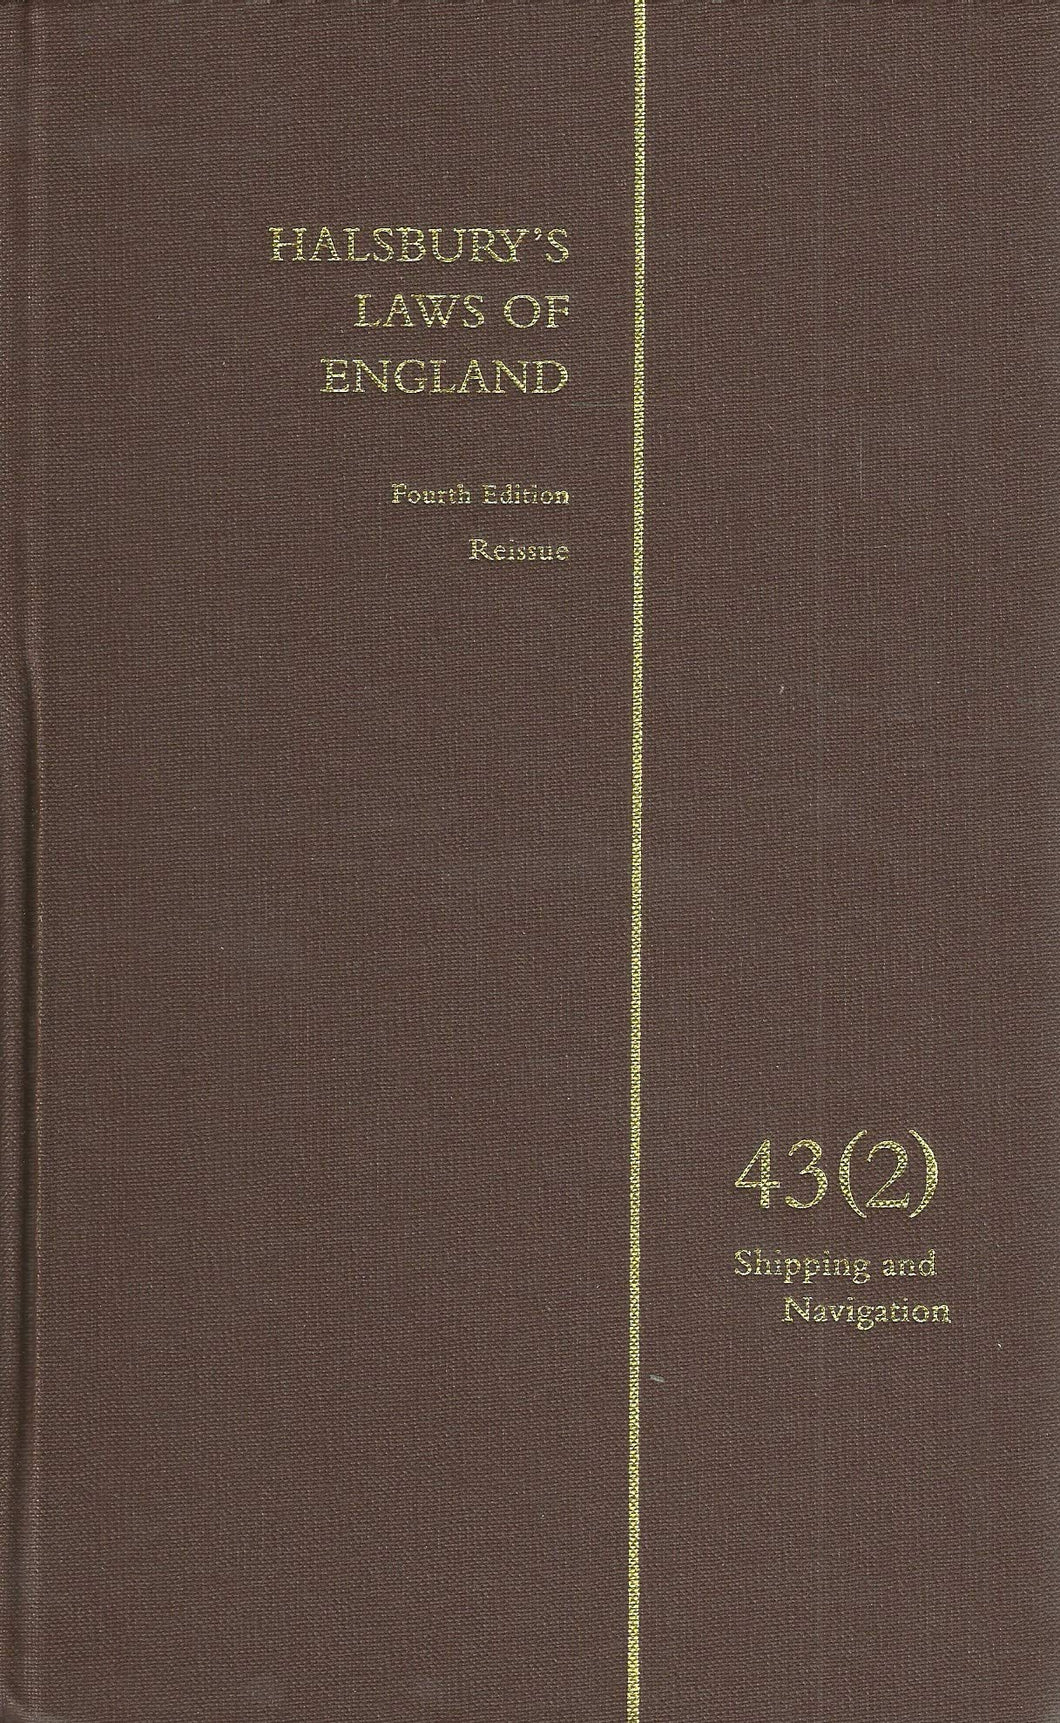 Halsbury's Laws of England Vol 43(2)